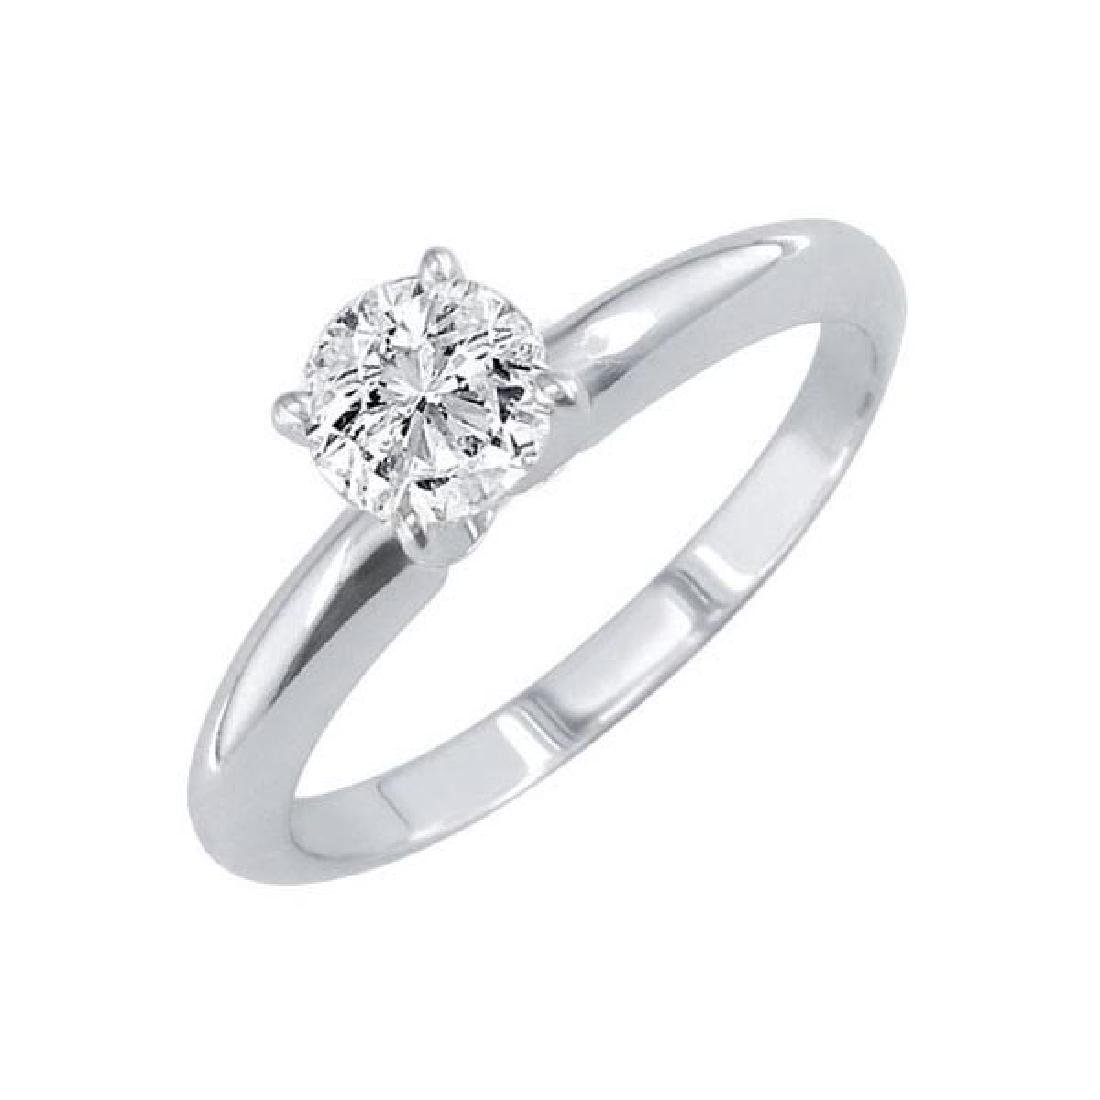 Certified 1.04 CTW Round Diamond Solitaire 14k Ring J/S